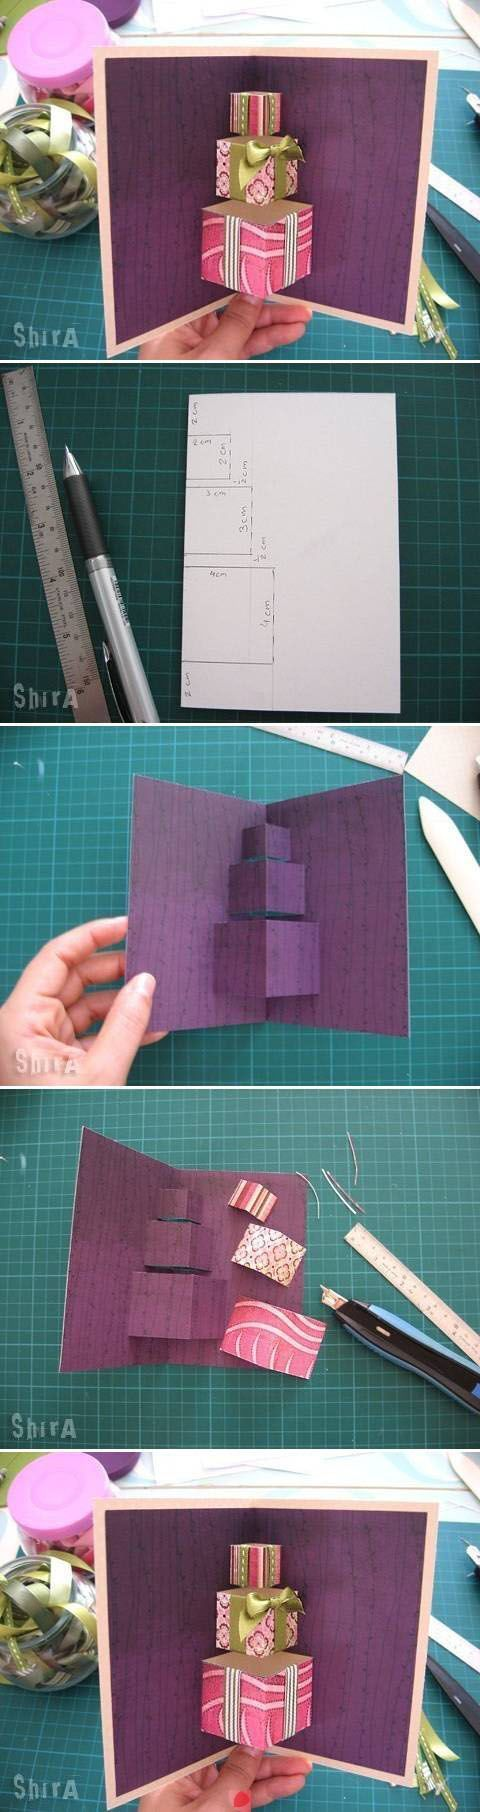 How to make a birthday present 3d pop up card